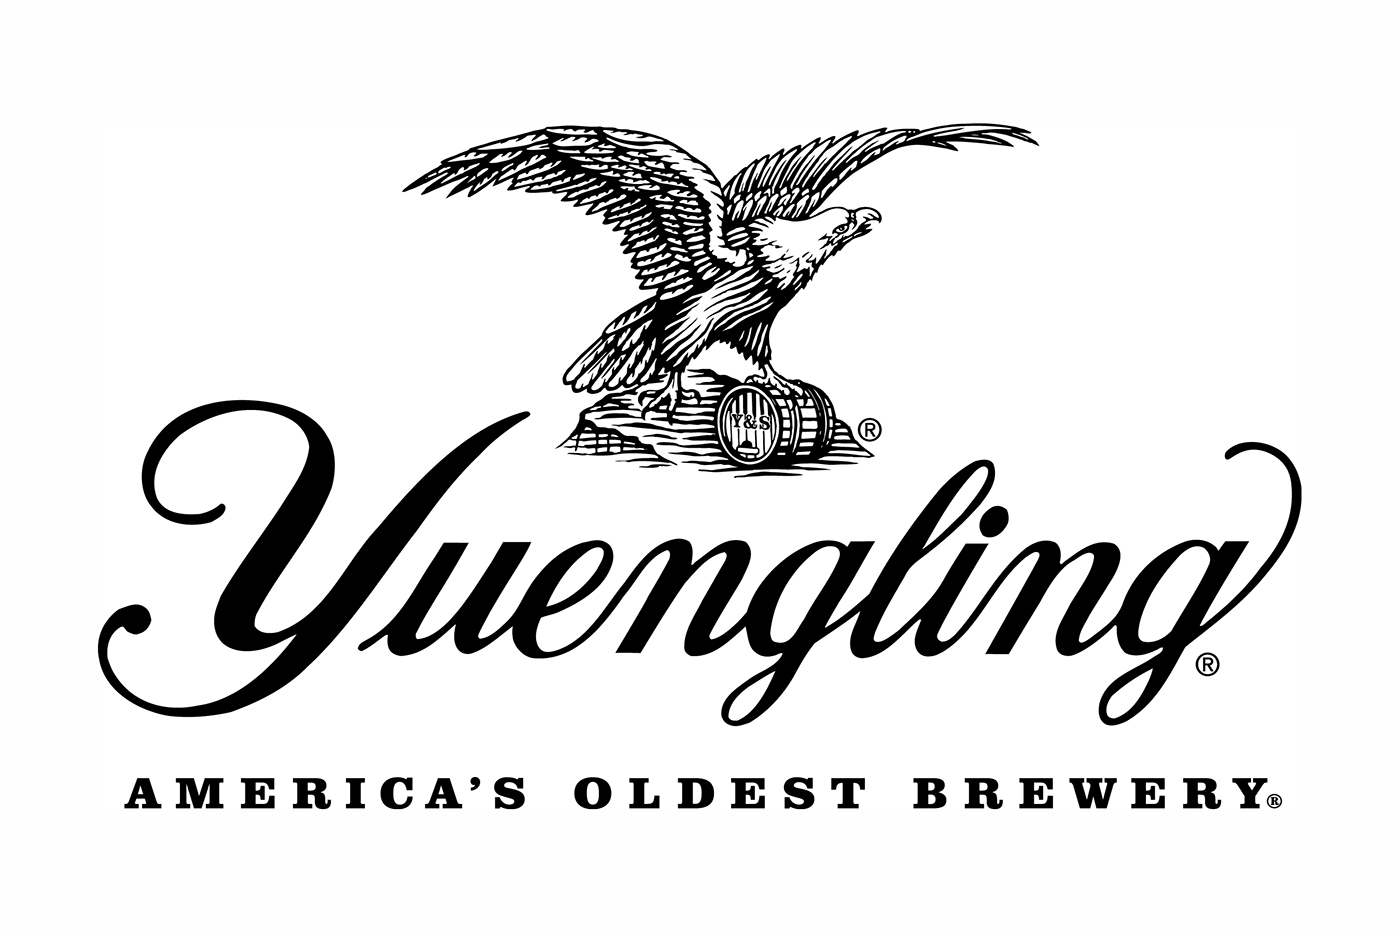 Yuengling Brewery Logomark Illustrated by Steven Noble on Behance.